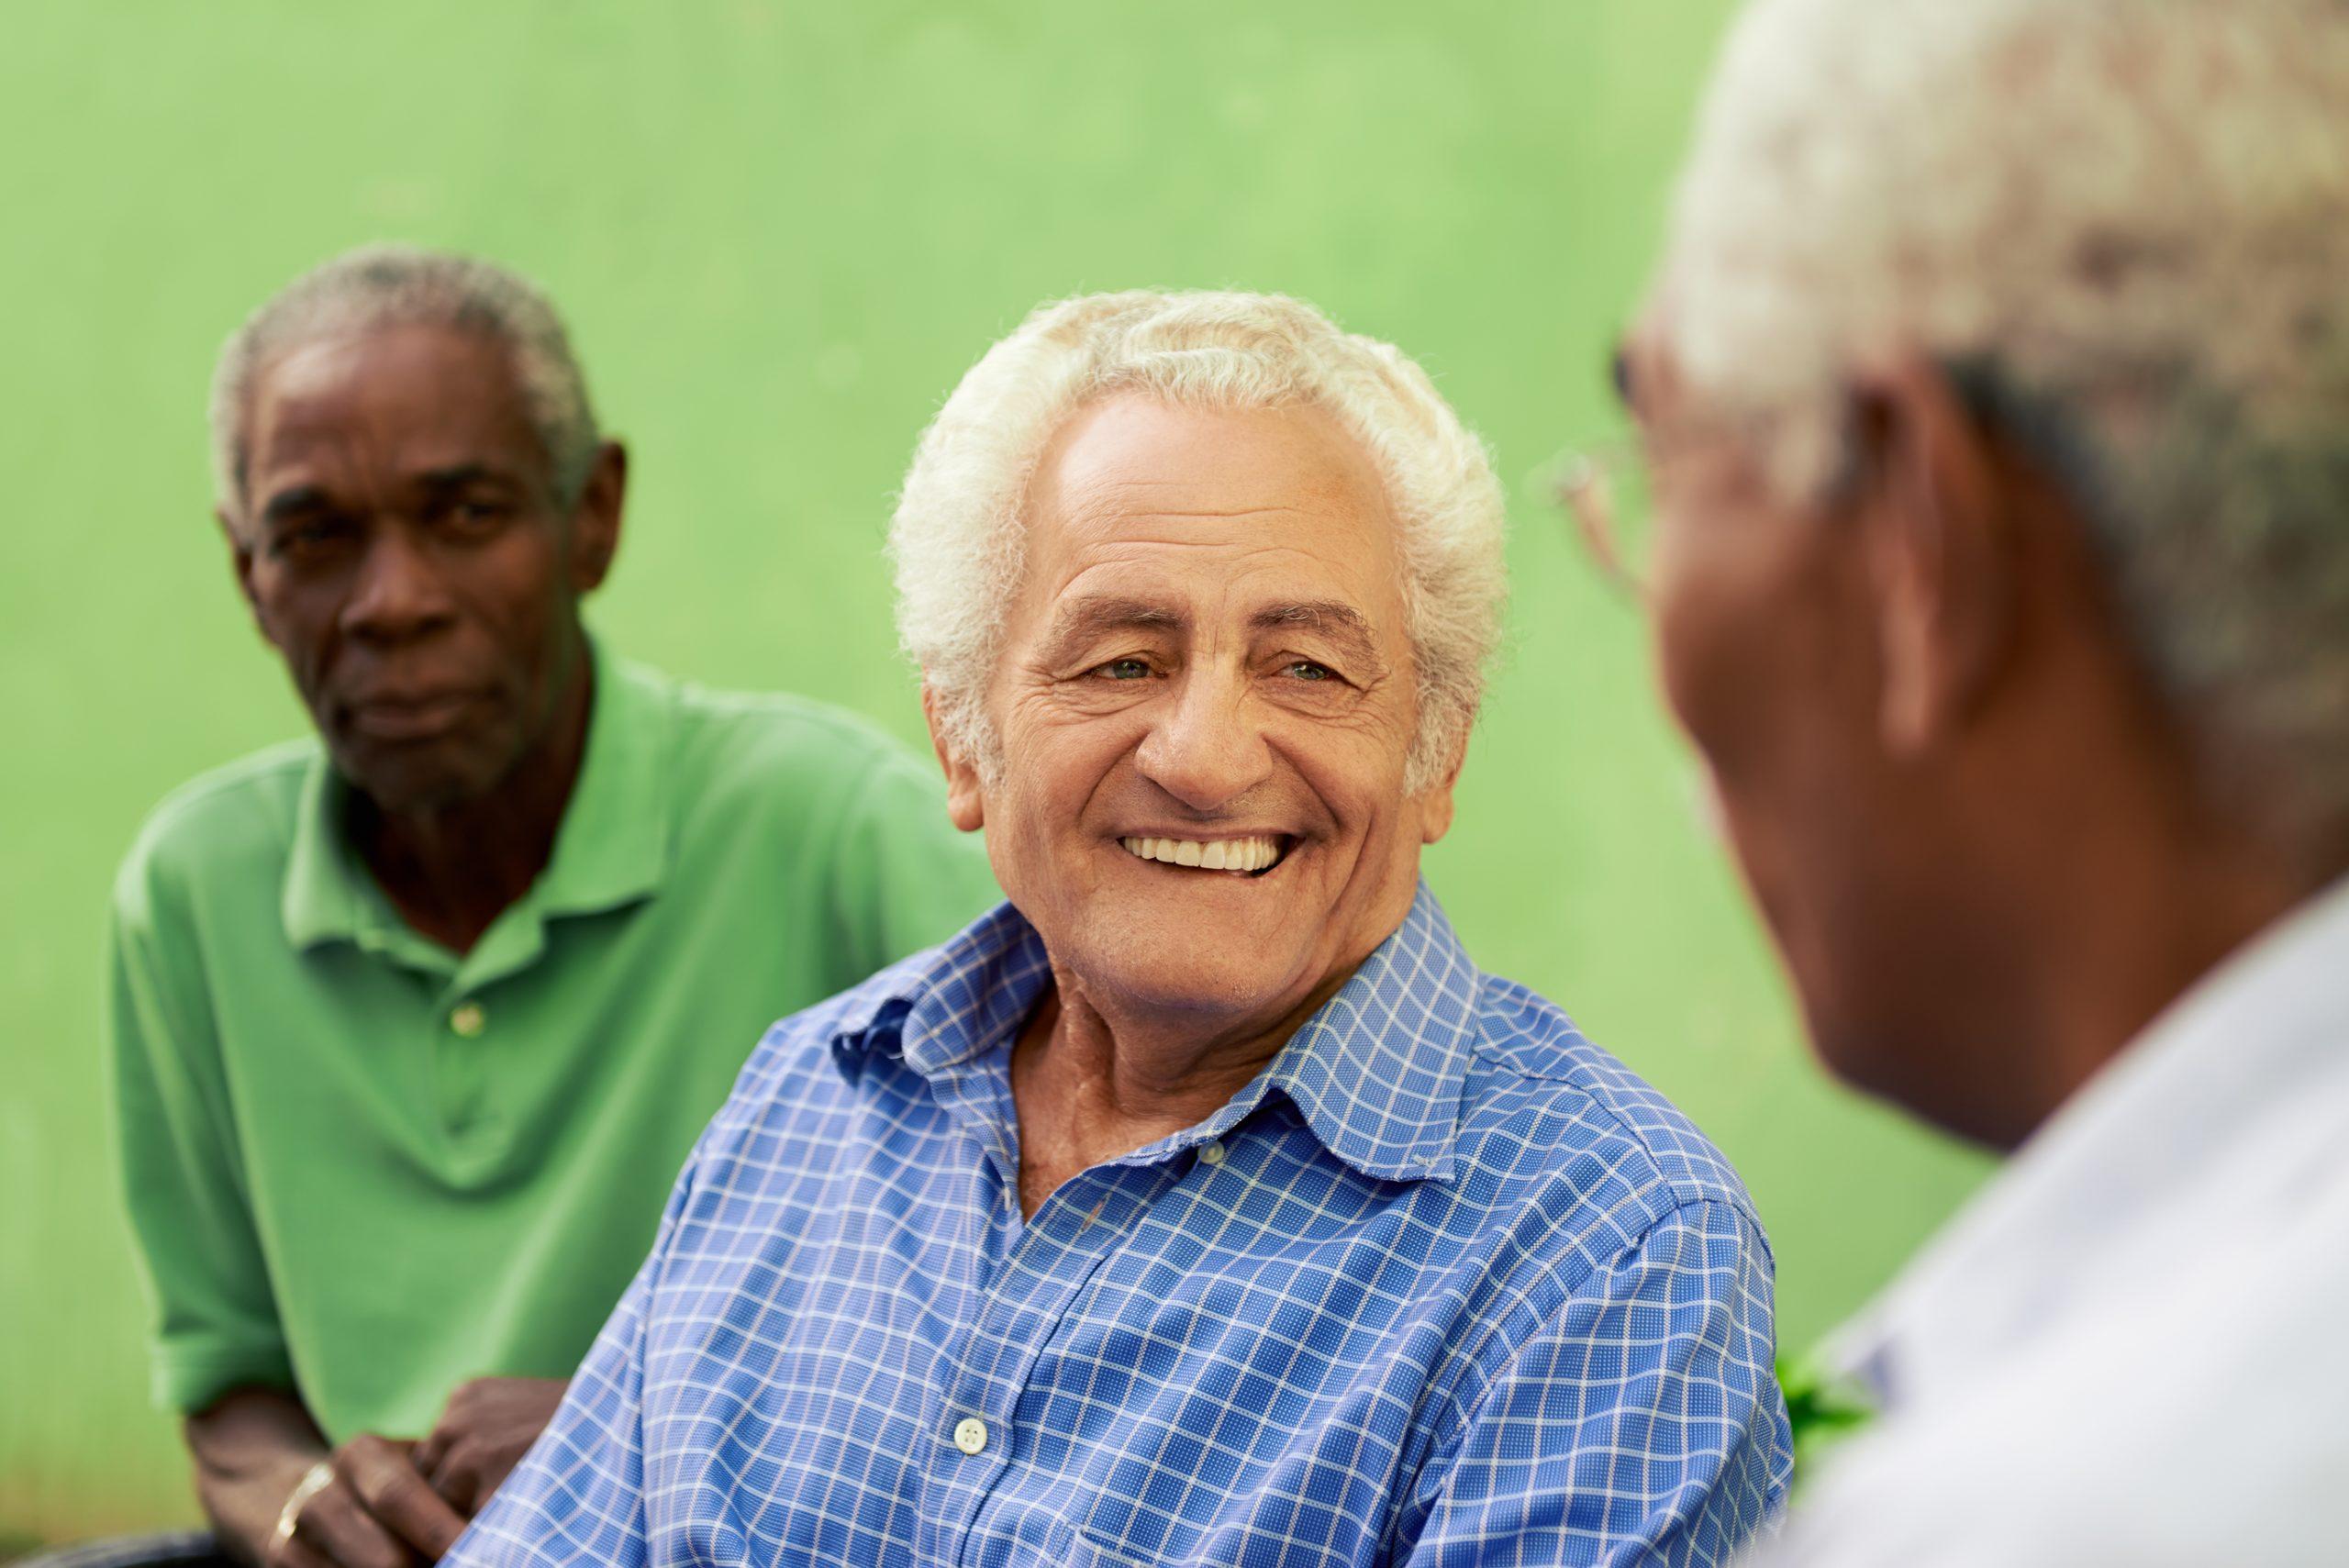 Socializing reduces isolation for older adults